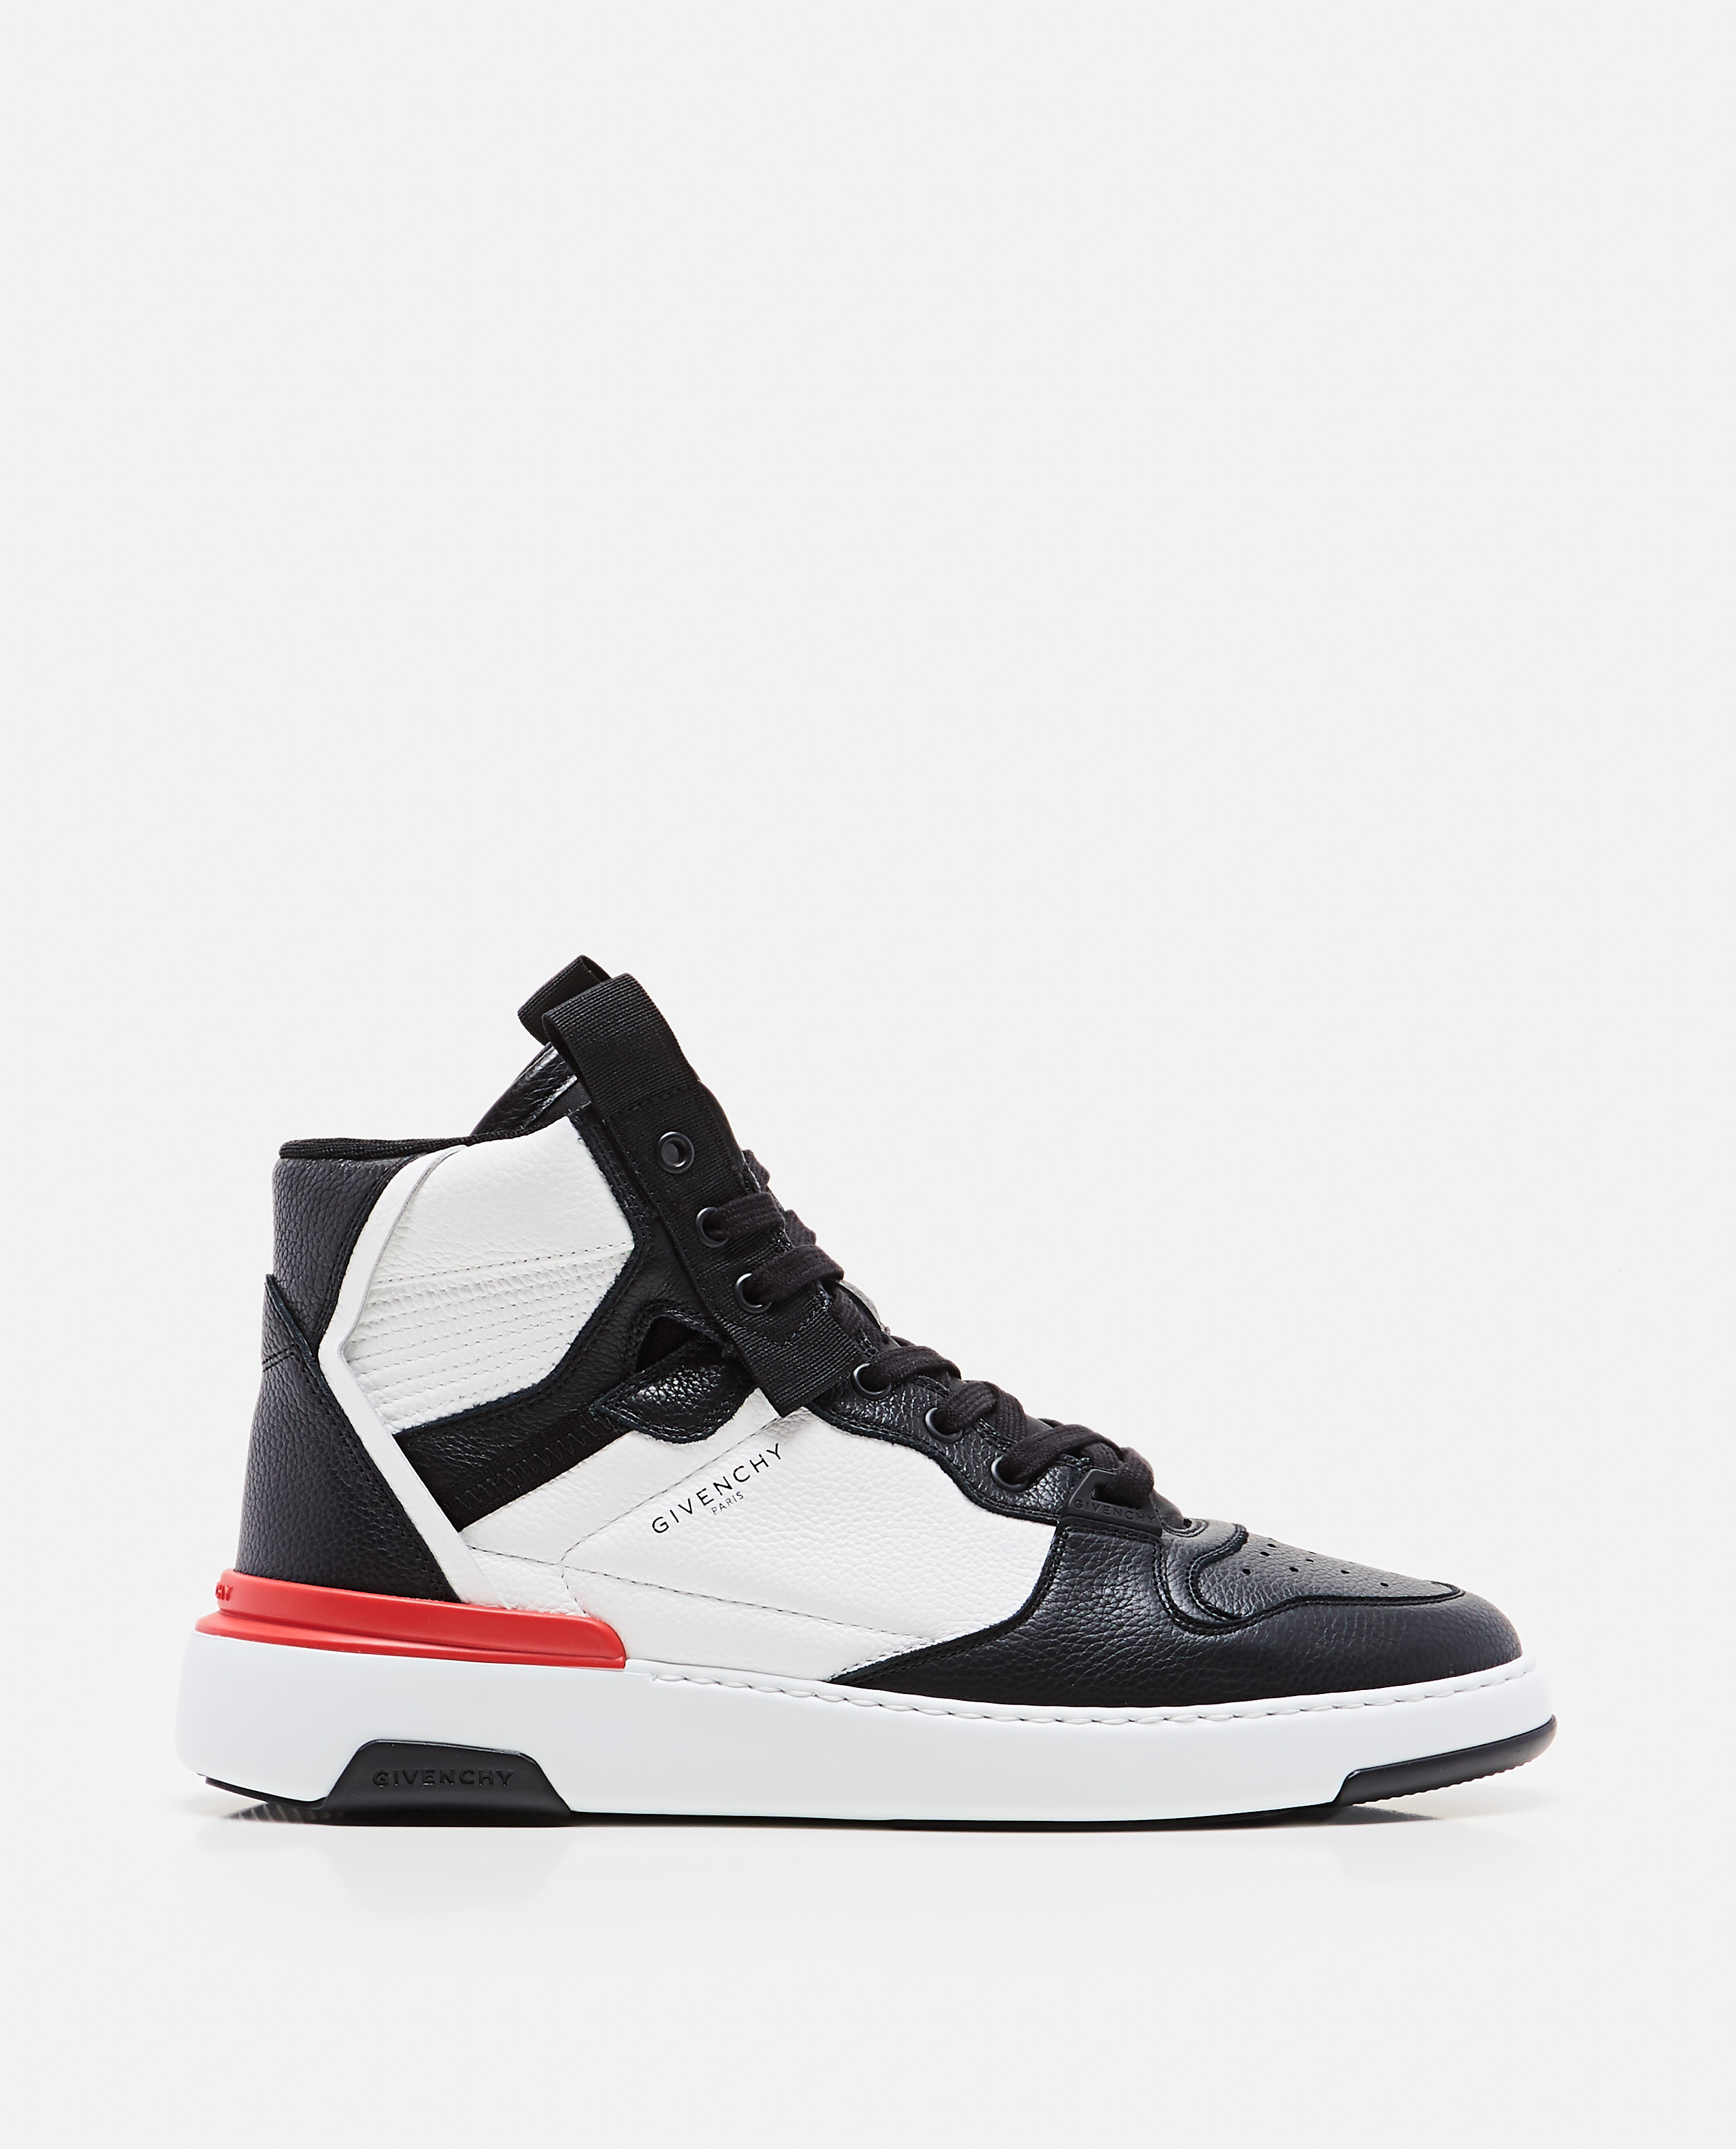 Wing high-top sneakers